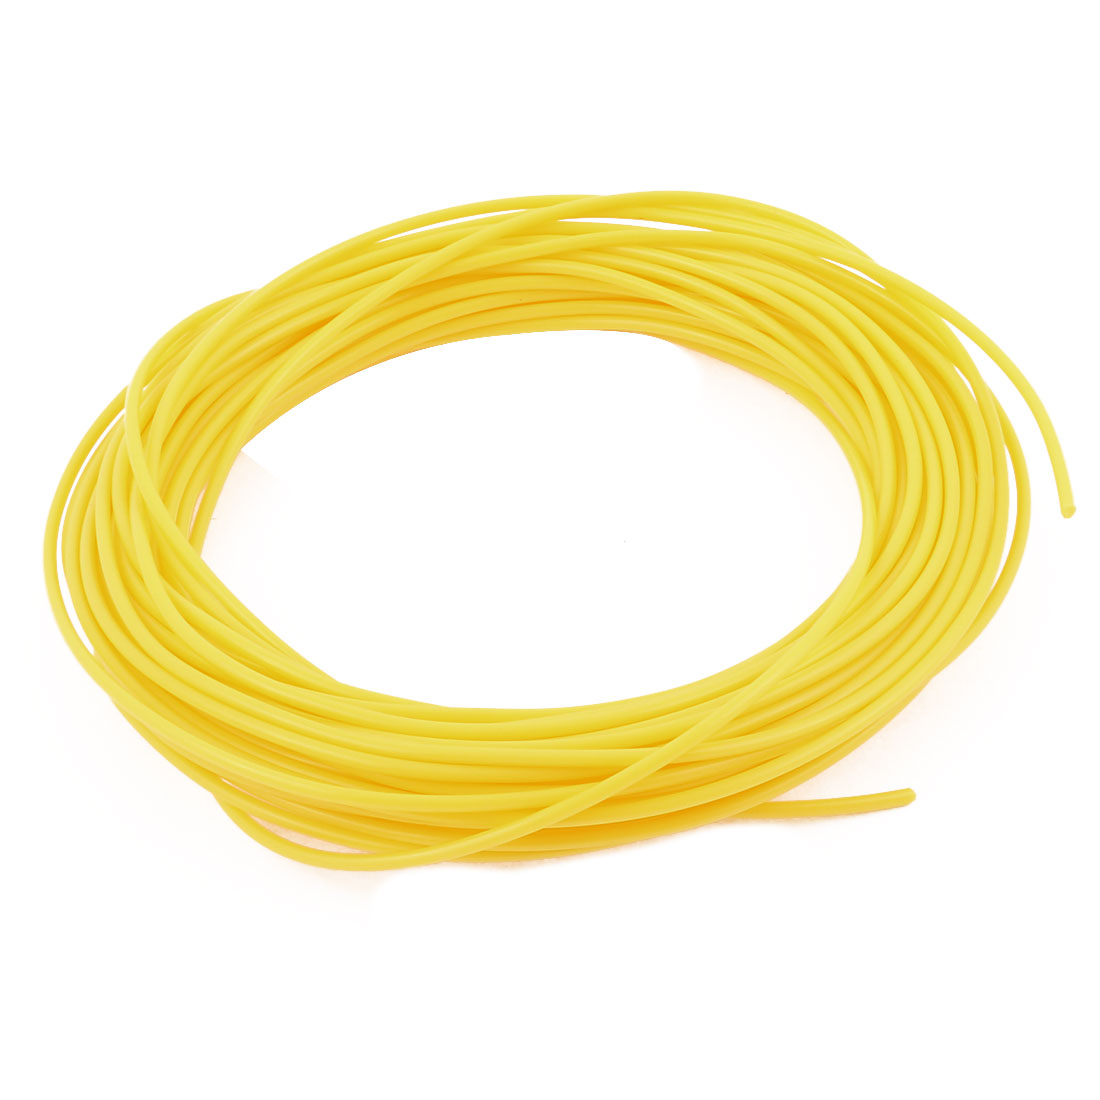 10m 3D Printer Pen Painting Filament Refills PLA Printing Material Yellow